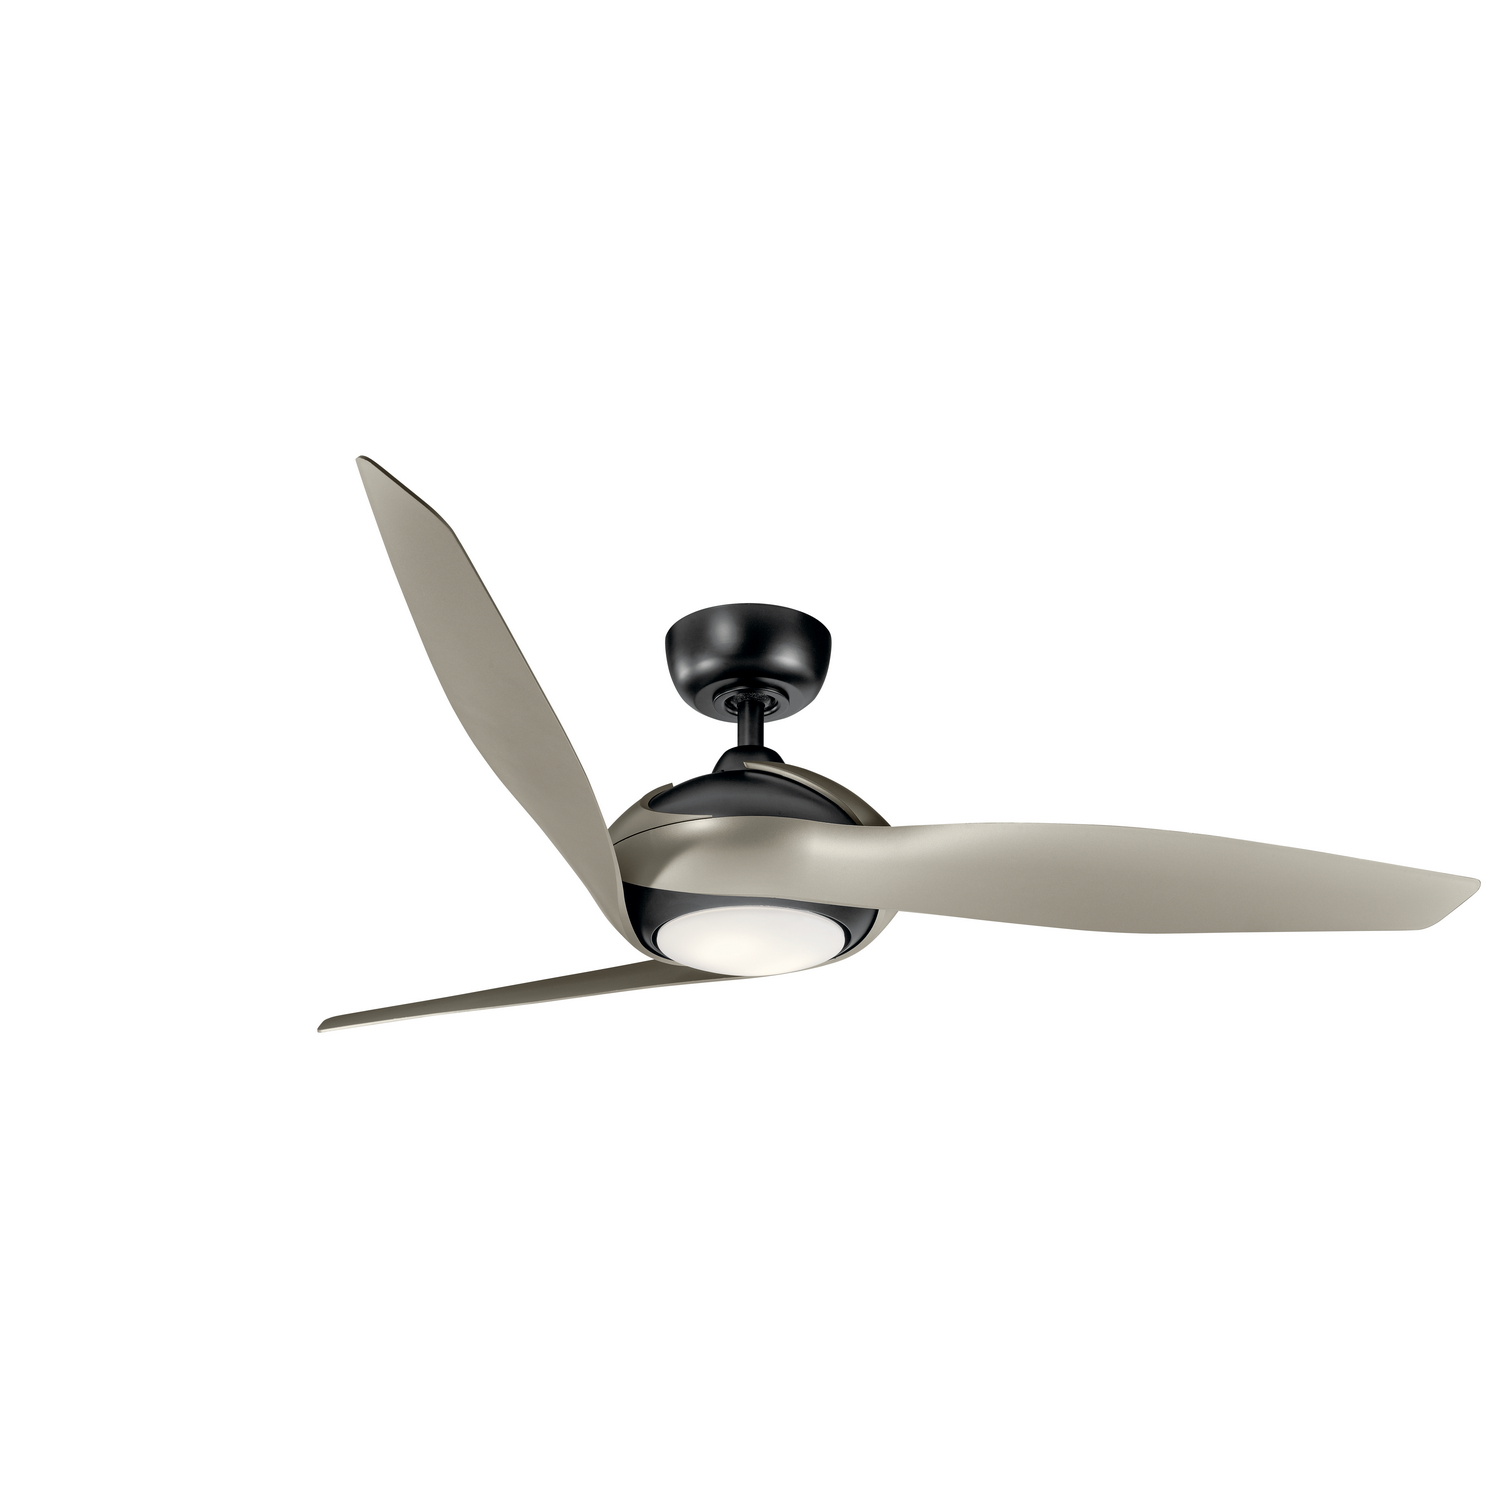 60 inchCeiling Fan from the Zenith collection by Kichler 300200SBK